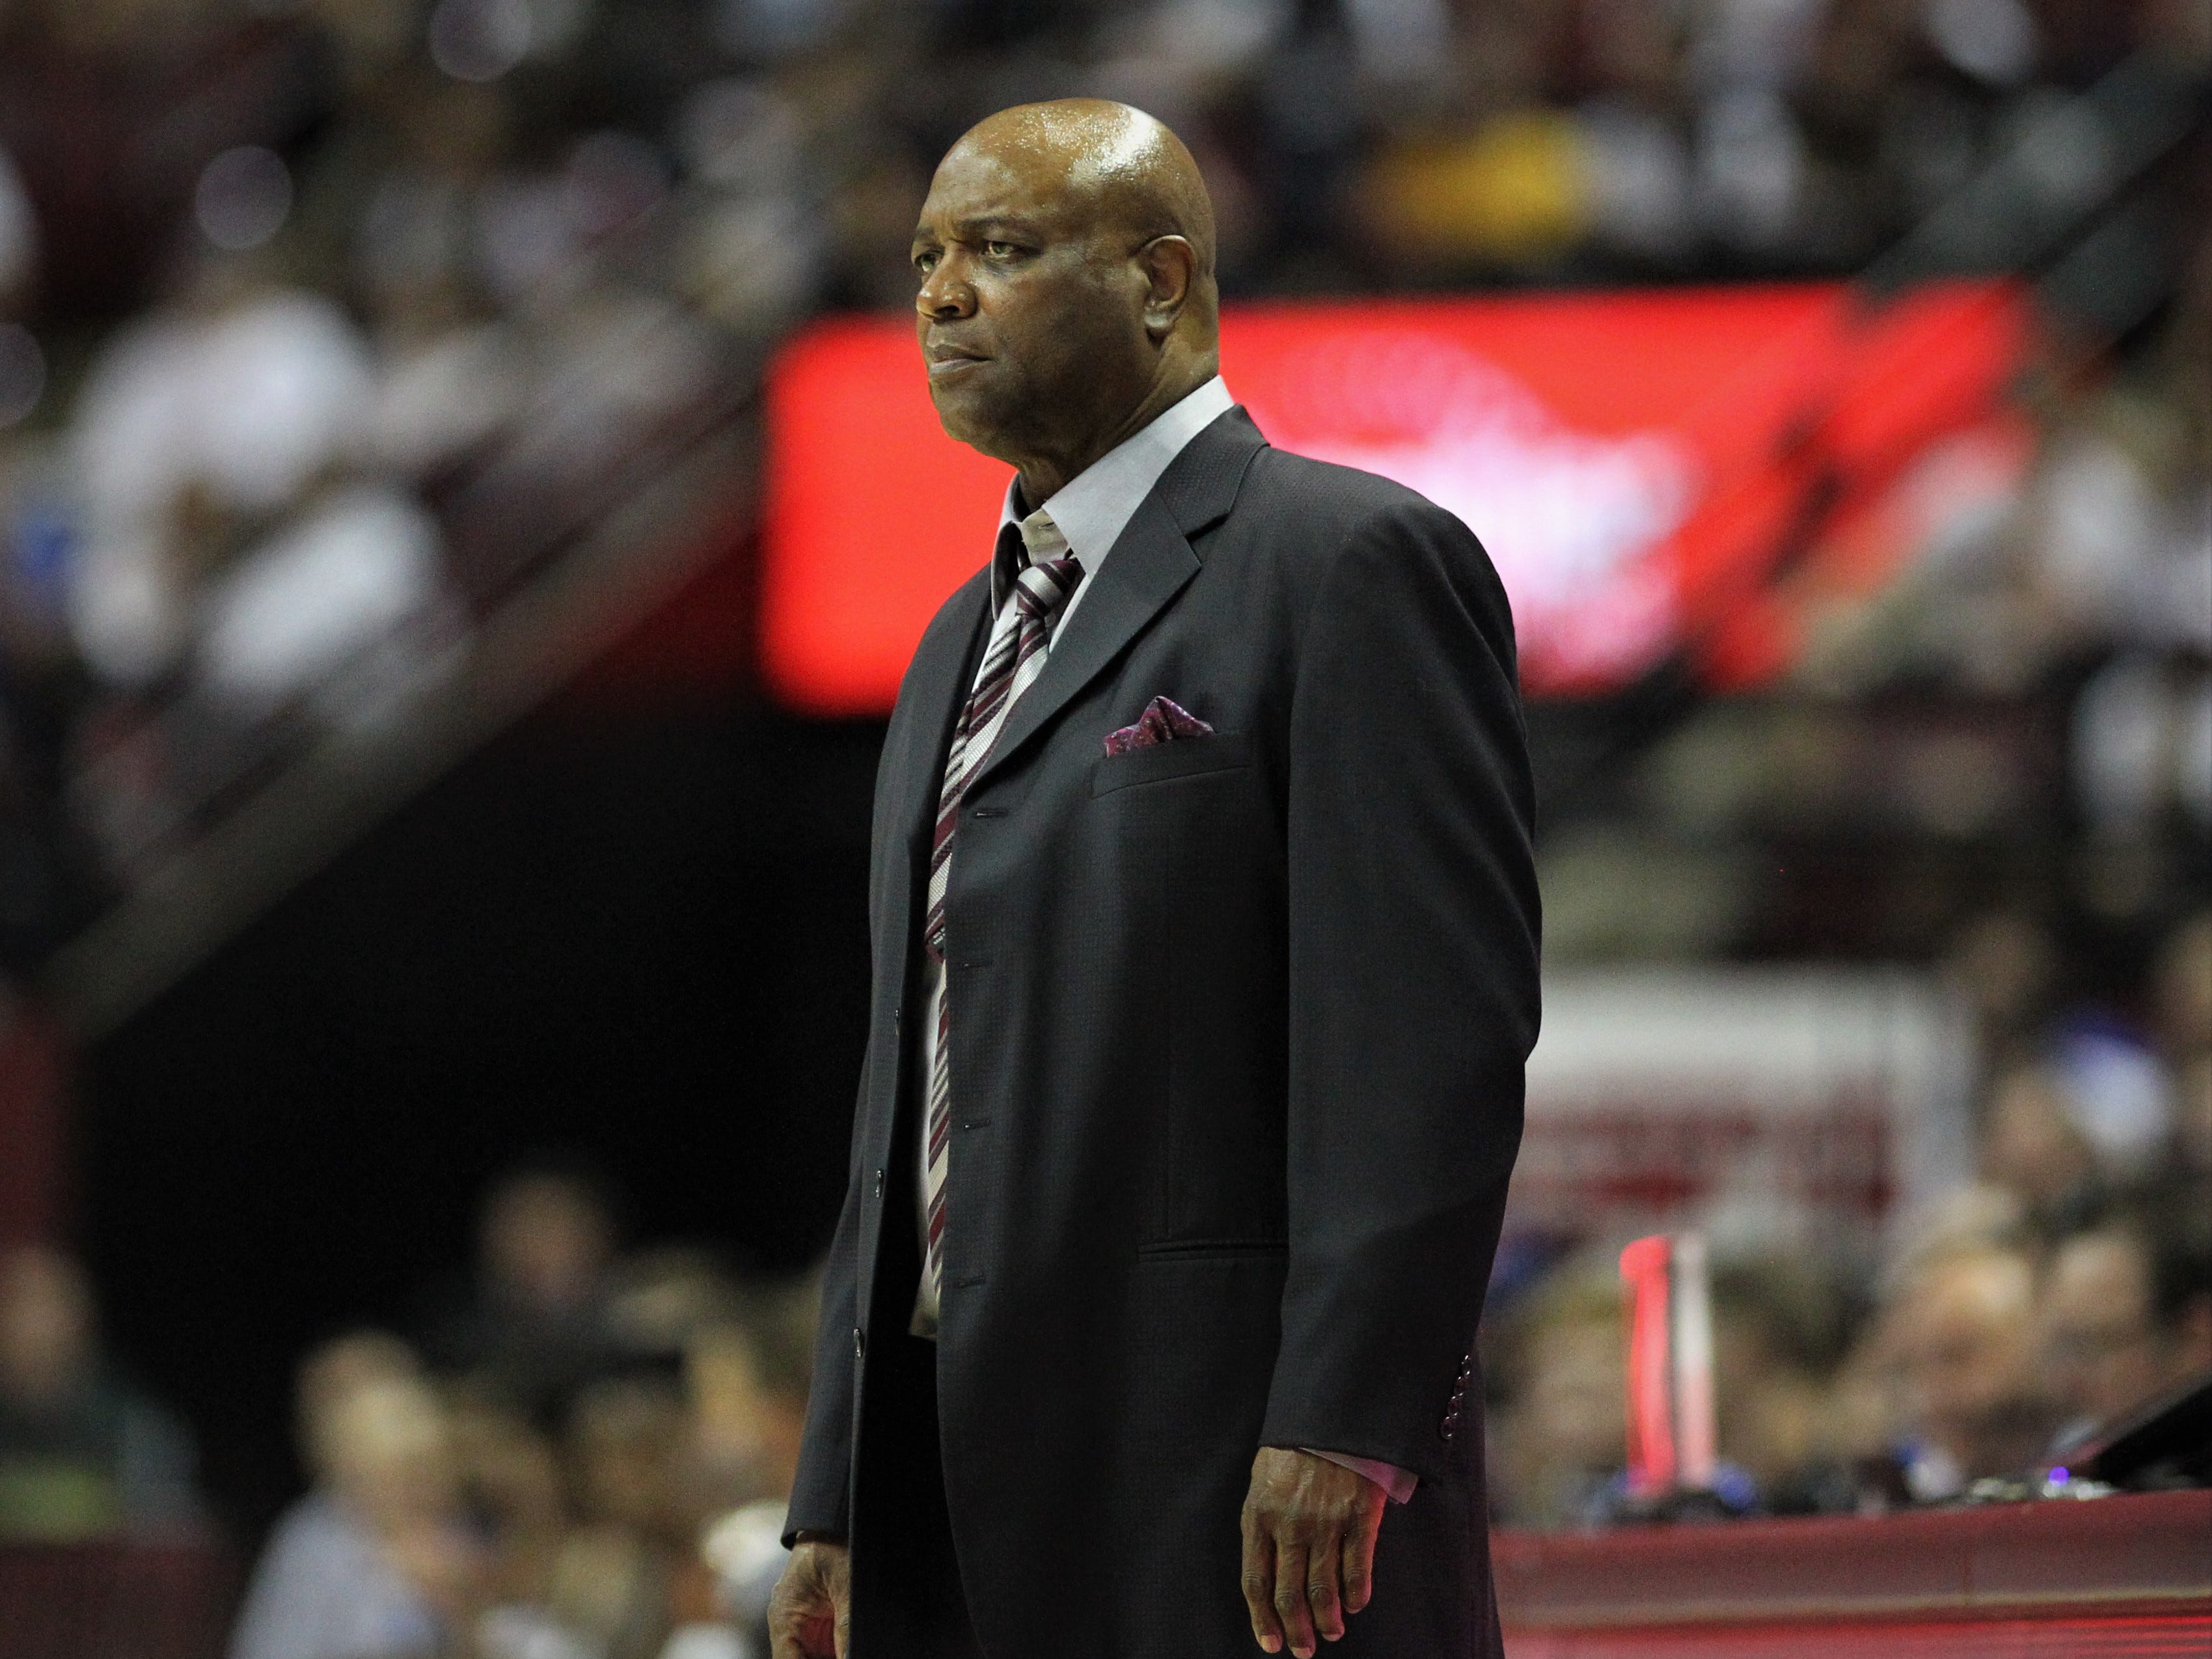 Florida State men's basketball head coach Leonard Hamilton watches his team during the Sunshine Showdown game against Florida on Tuesday at the Tucker Civic Center.